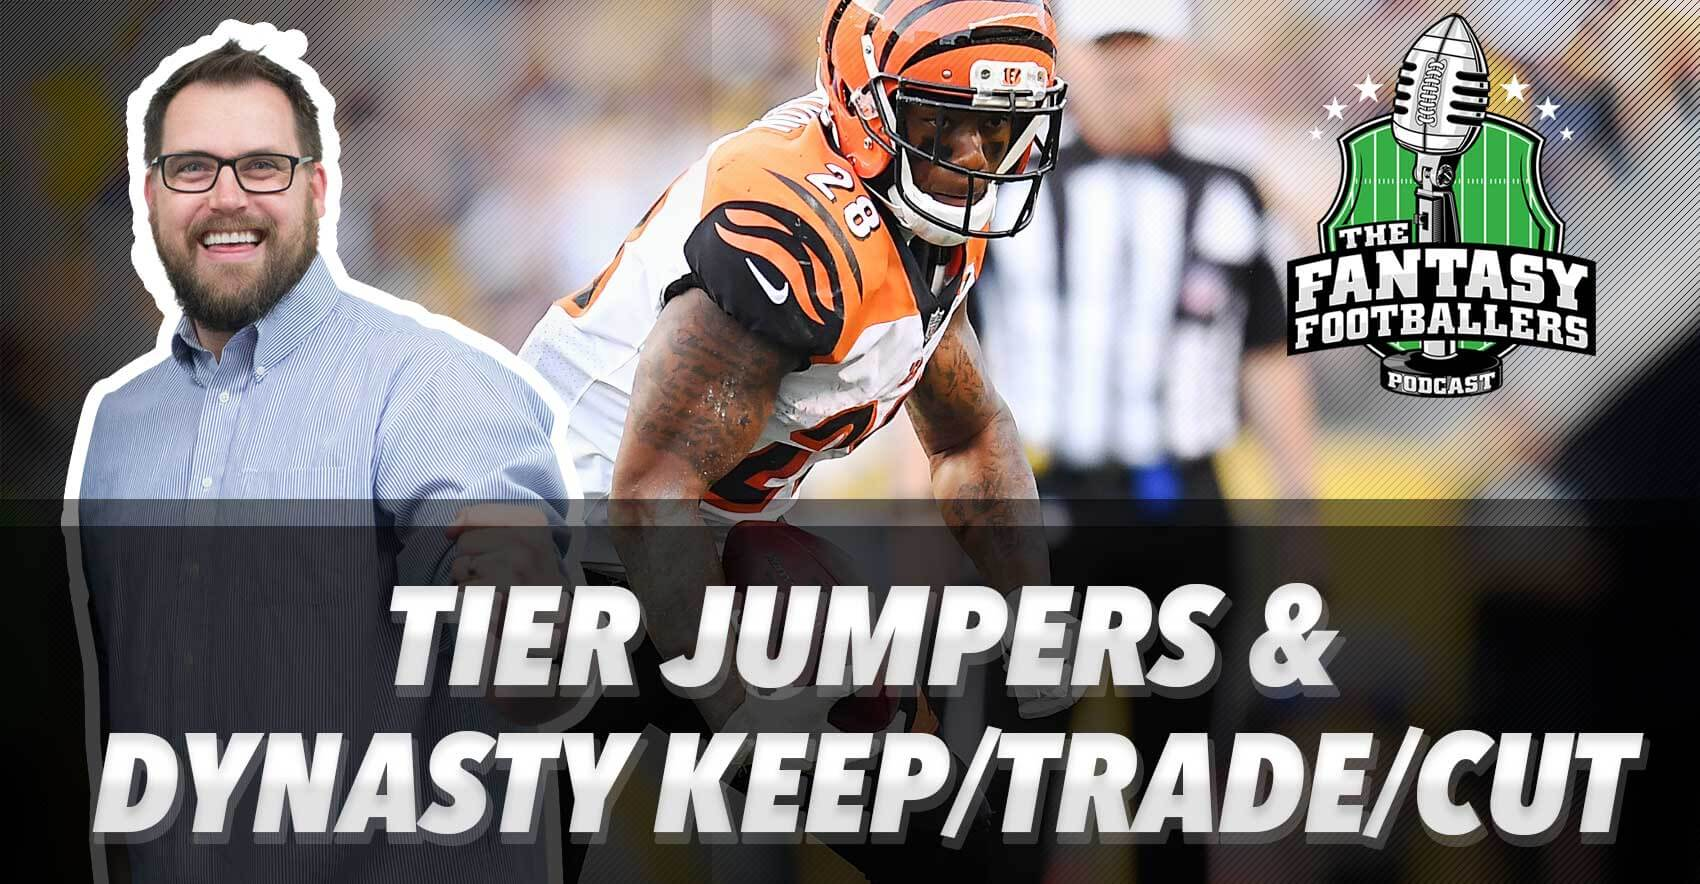 Tier Jump Candidates + Dynasty Keep/Trade/Cut - Ep. #529